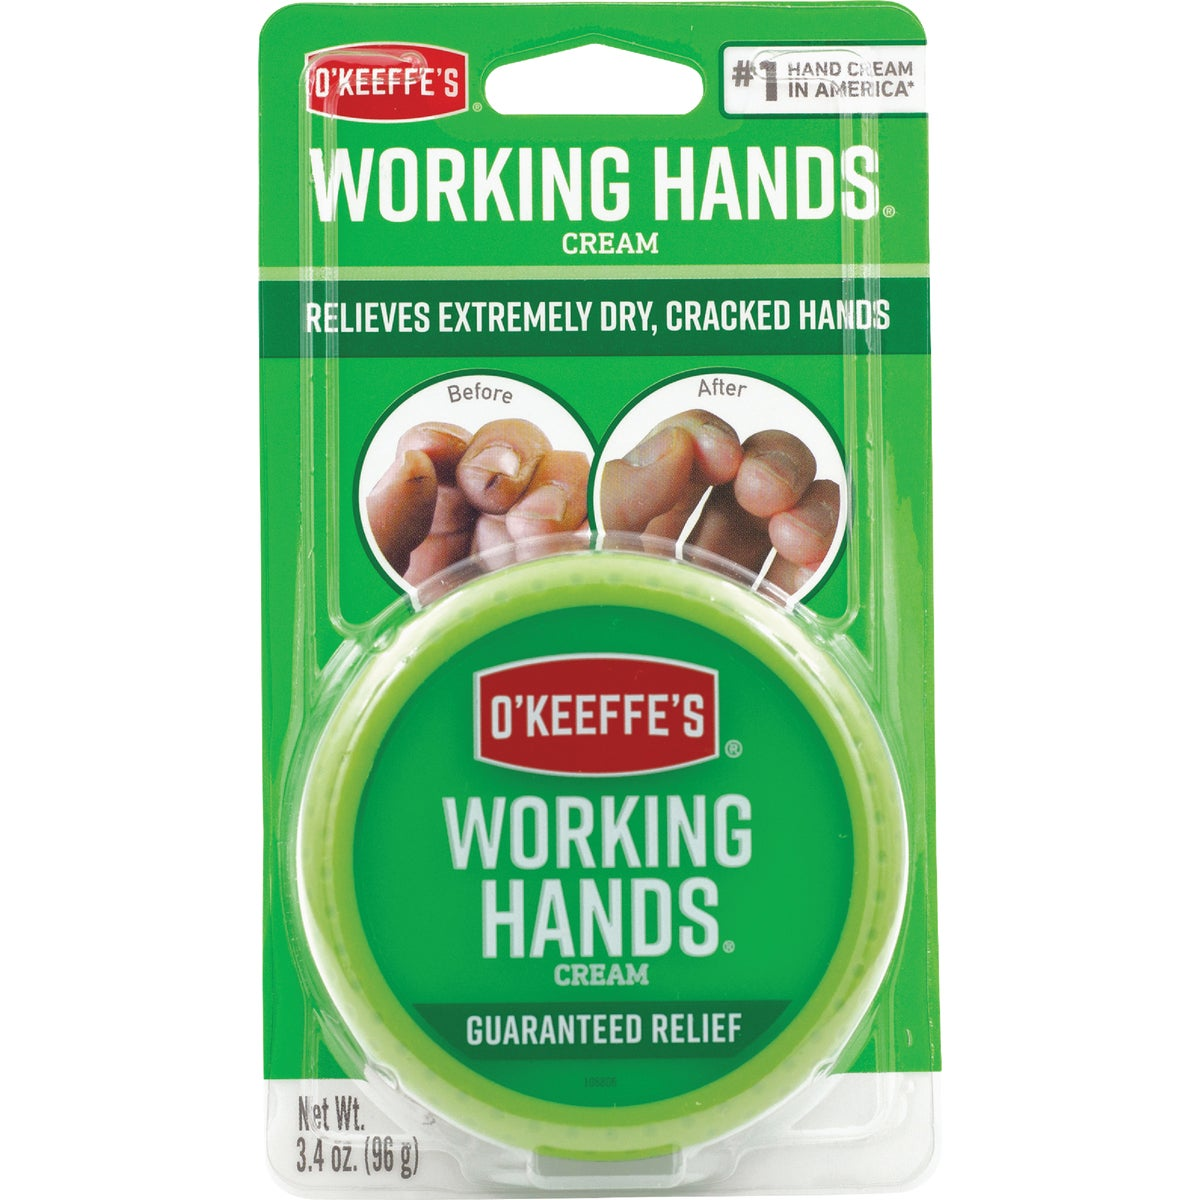 3.4 WORKING HANDS CREME